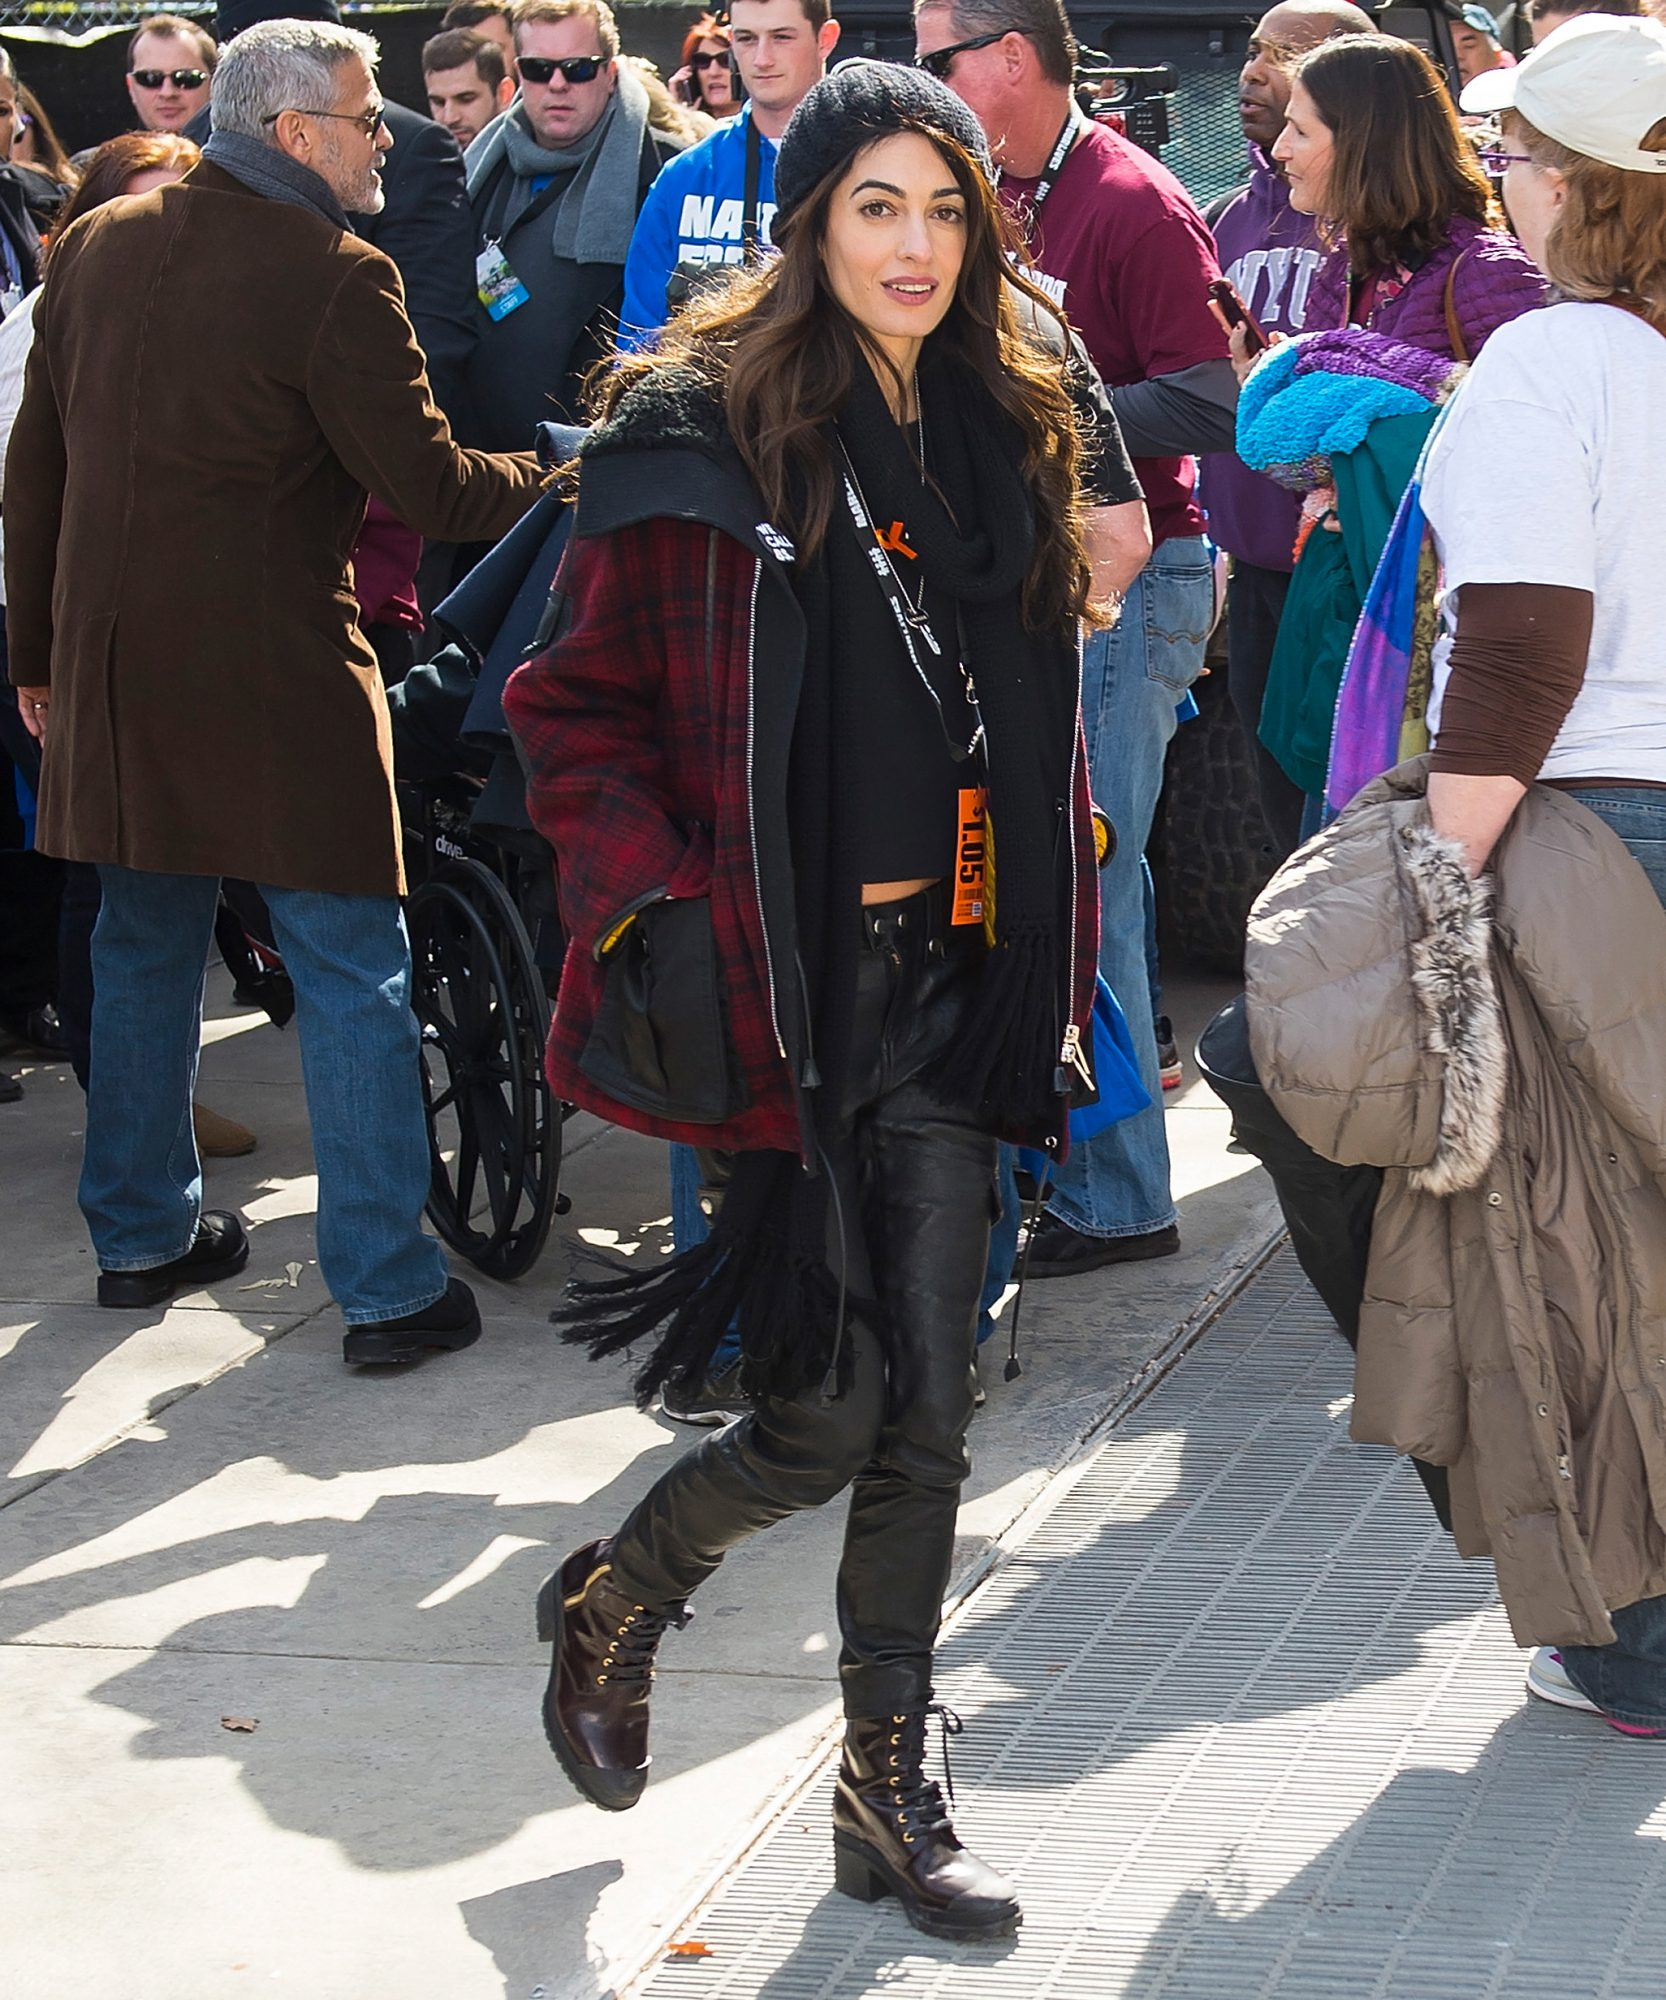 This Weather Resistant Boot Trend TK Celebs Can't Stop Wearing is Currently on Sale at Nordstrom